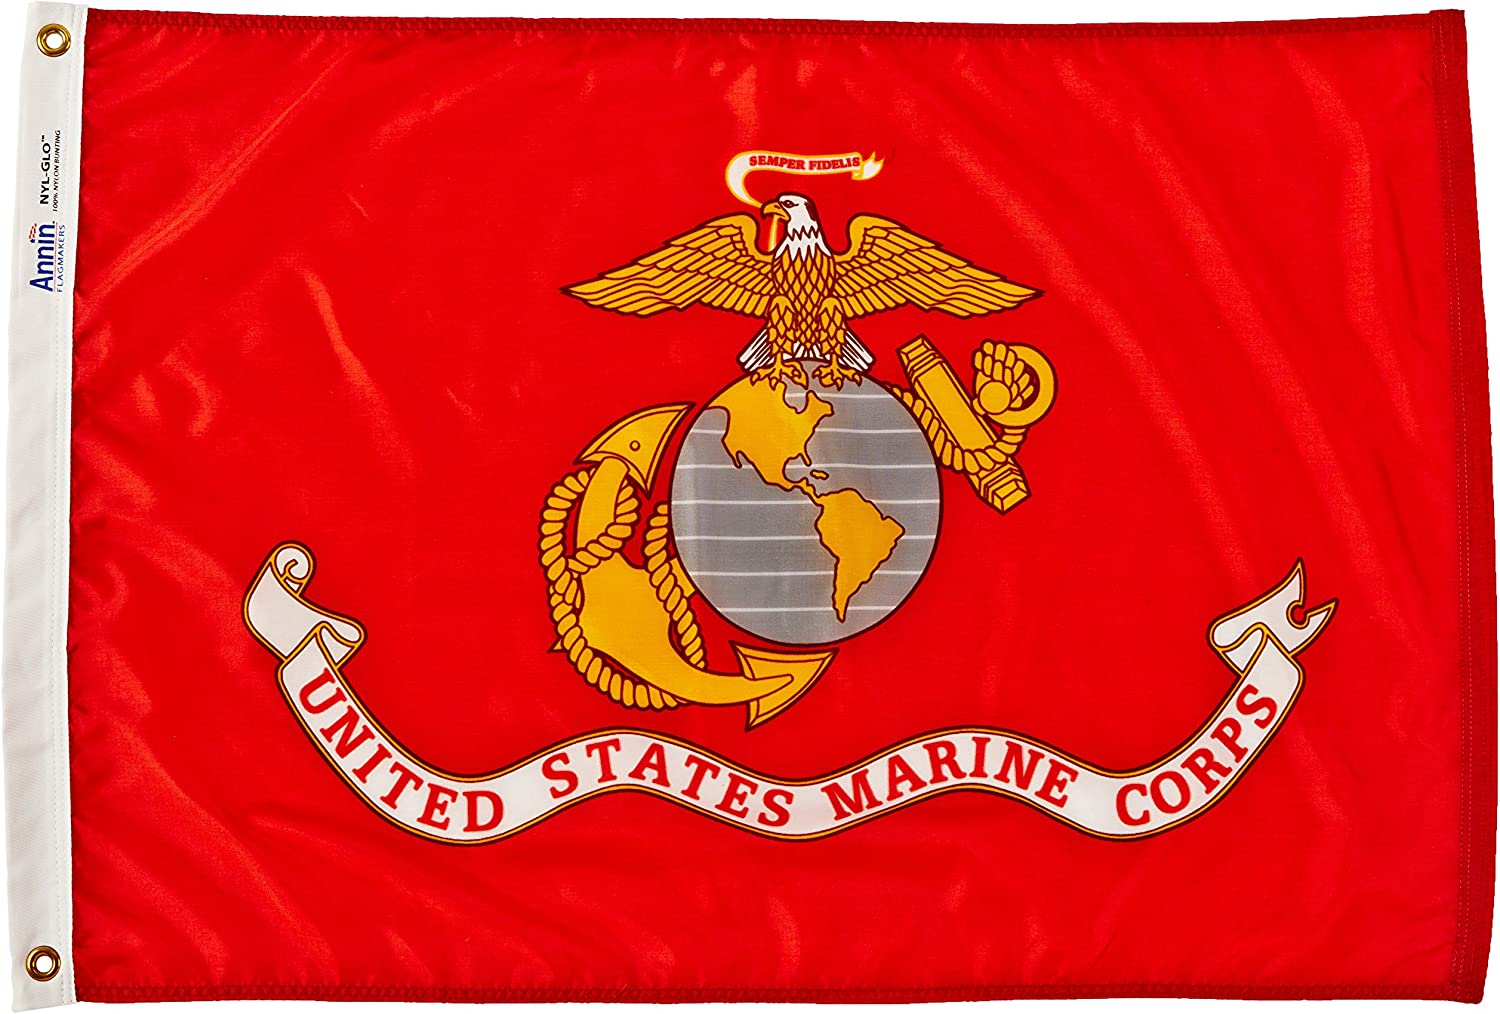 Annin Flagmakers Model 439004 U.S. Marine Corps Military Flag Nylon SolarGuard NYL-Glo, 2x3 ft, 100% Made in USA to Official Specifications. Officially Licensed